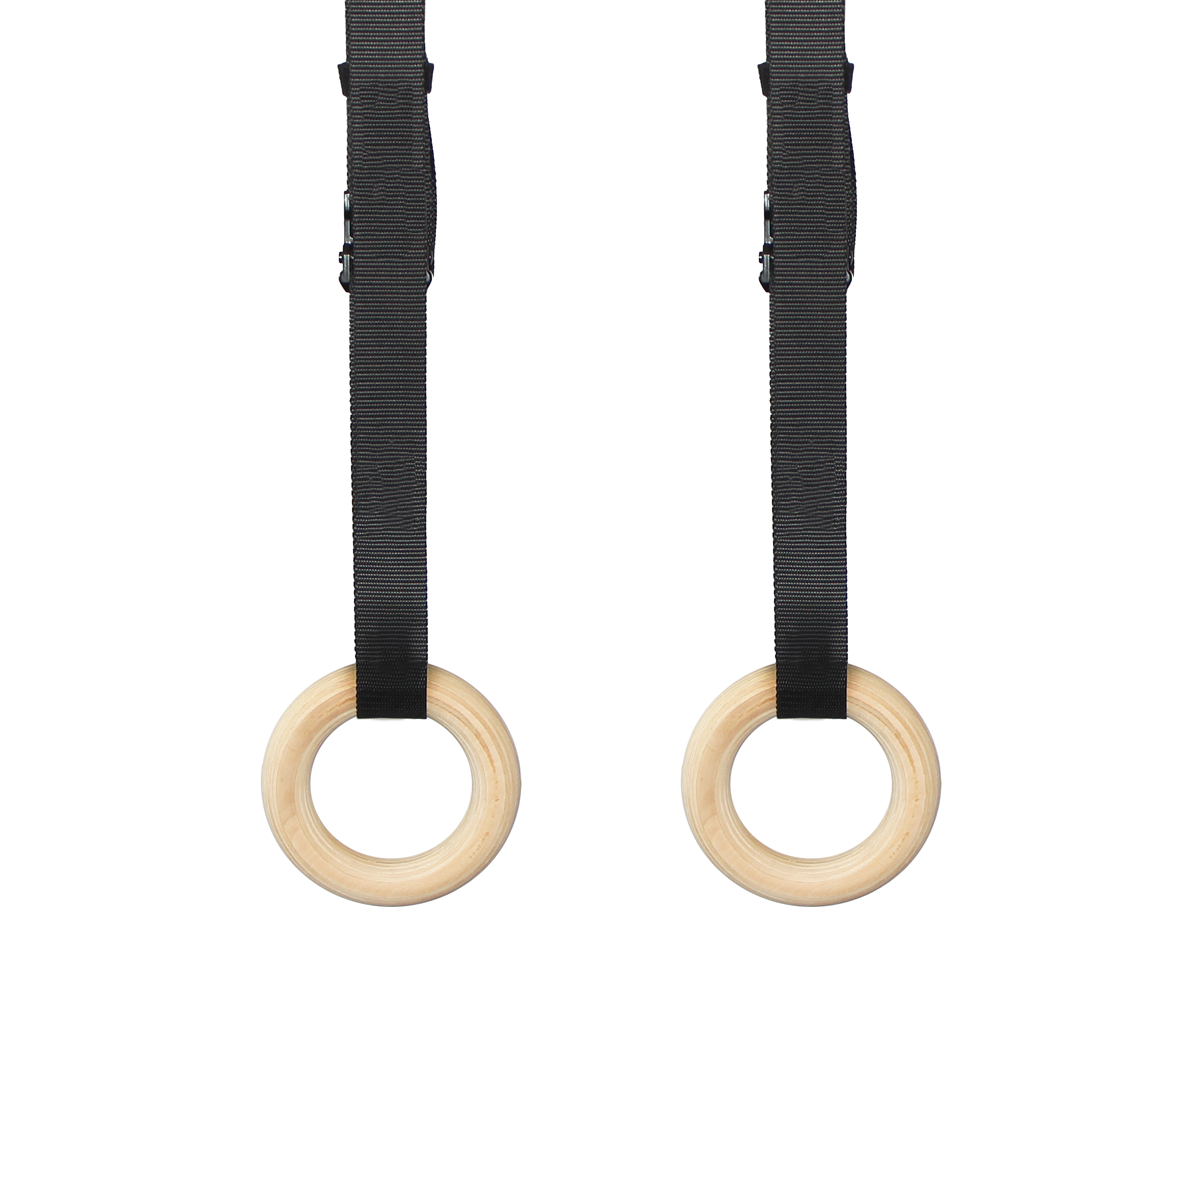 Kids Wooden Gymnastic Rings with Adjustable Straps